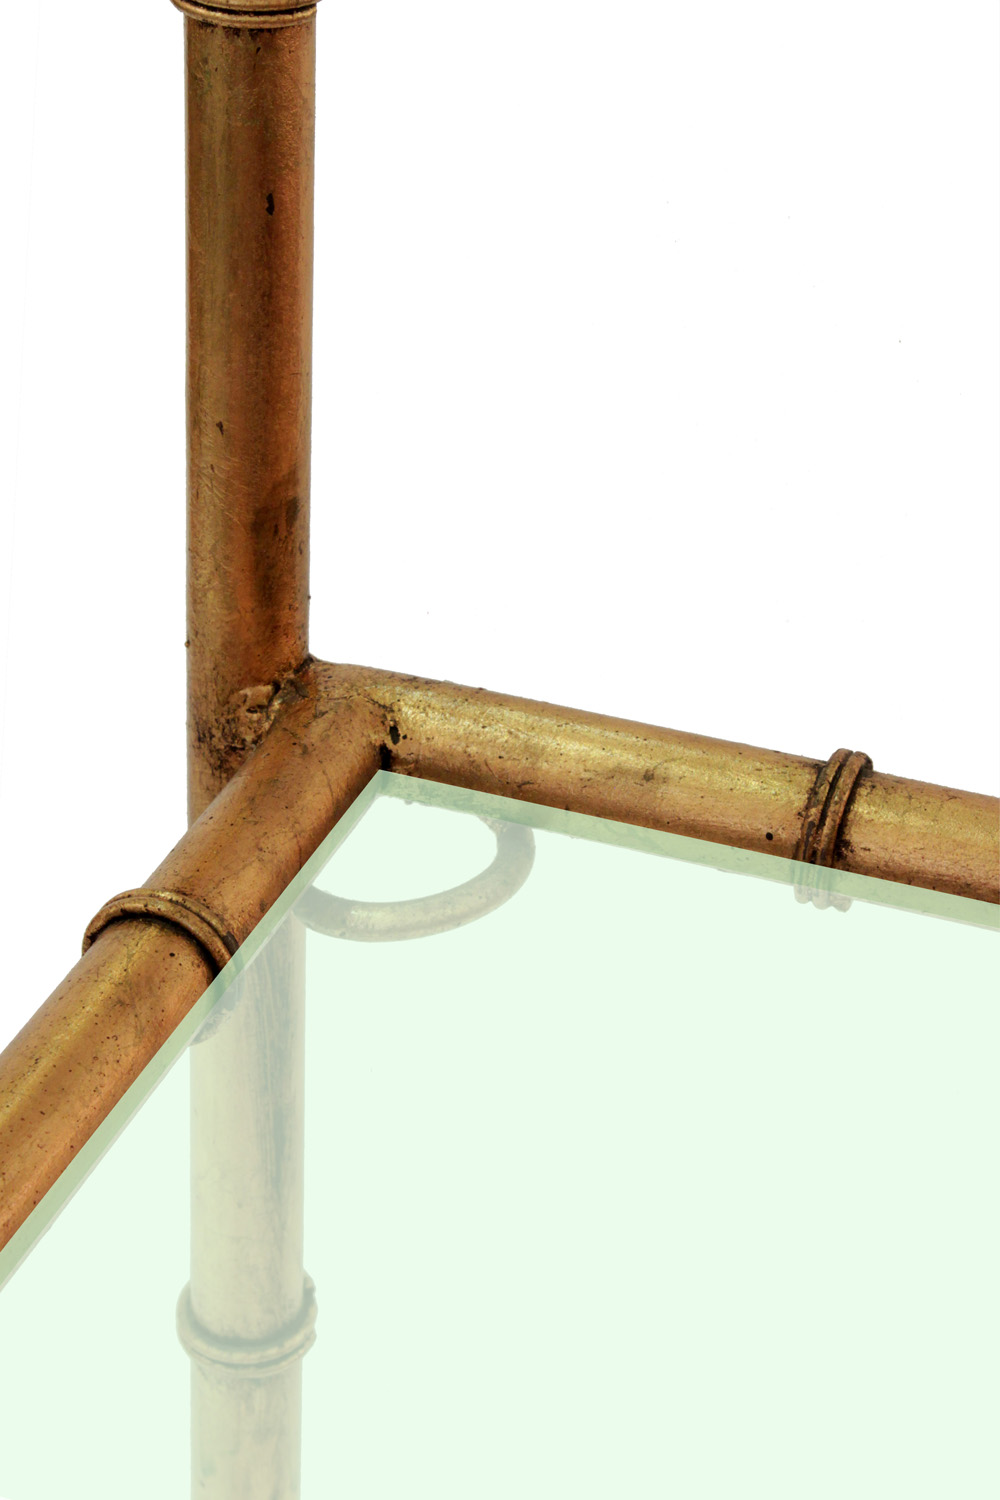 70's 95 gilded bamboo motif etagere10 detail3 hires.jpg